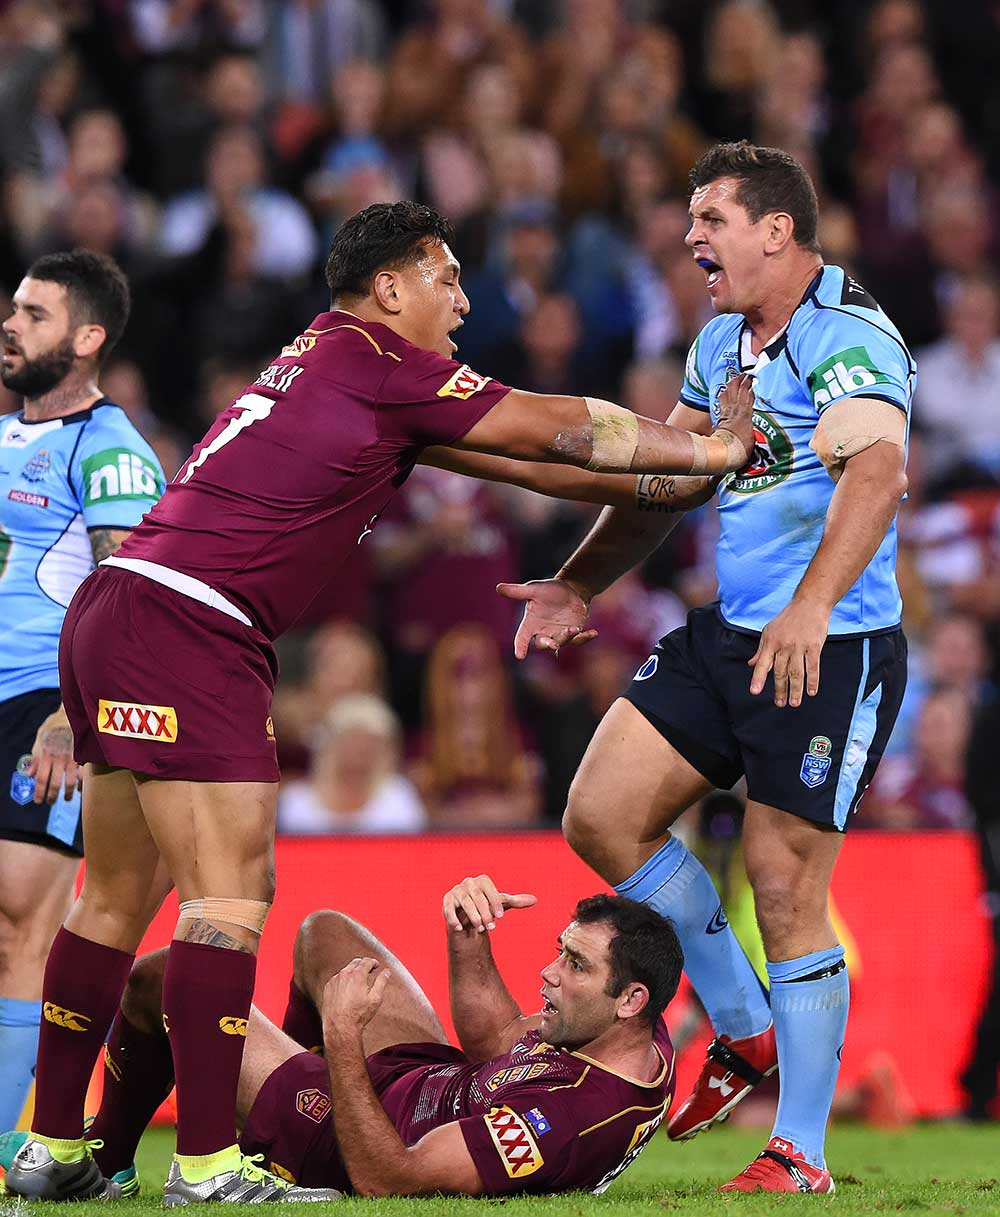 Maroons player Josh Papalii pushes Blues player Greg Bird